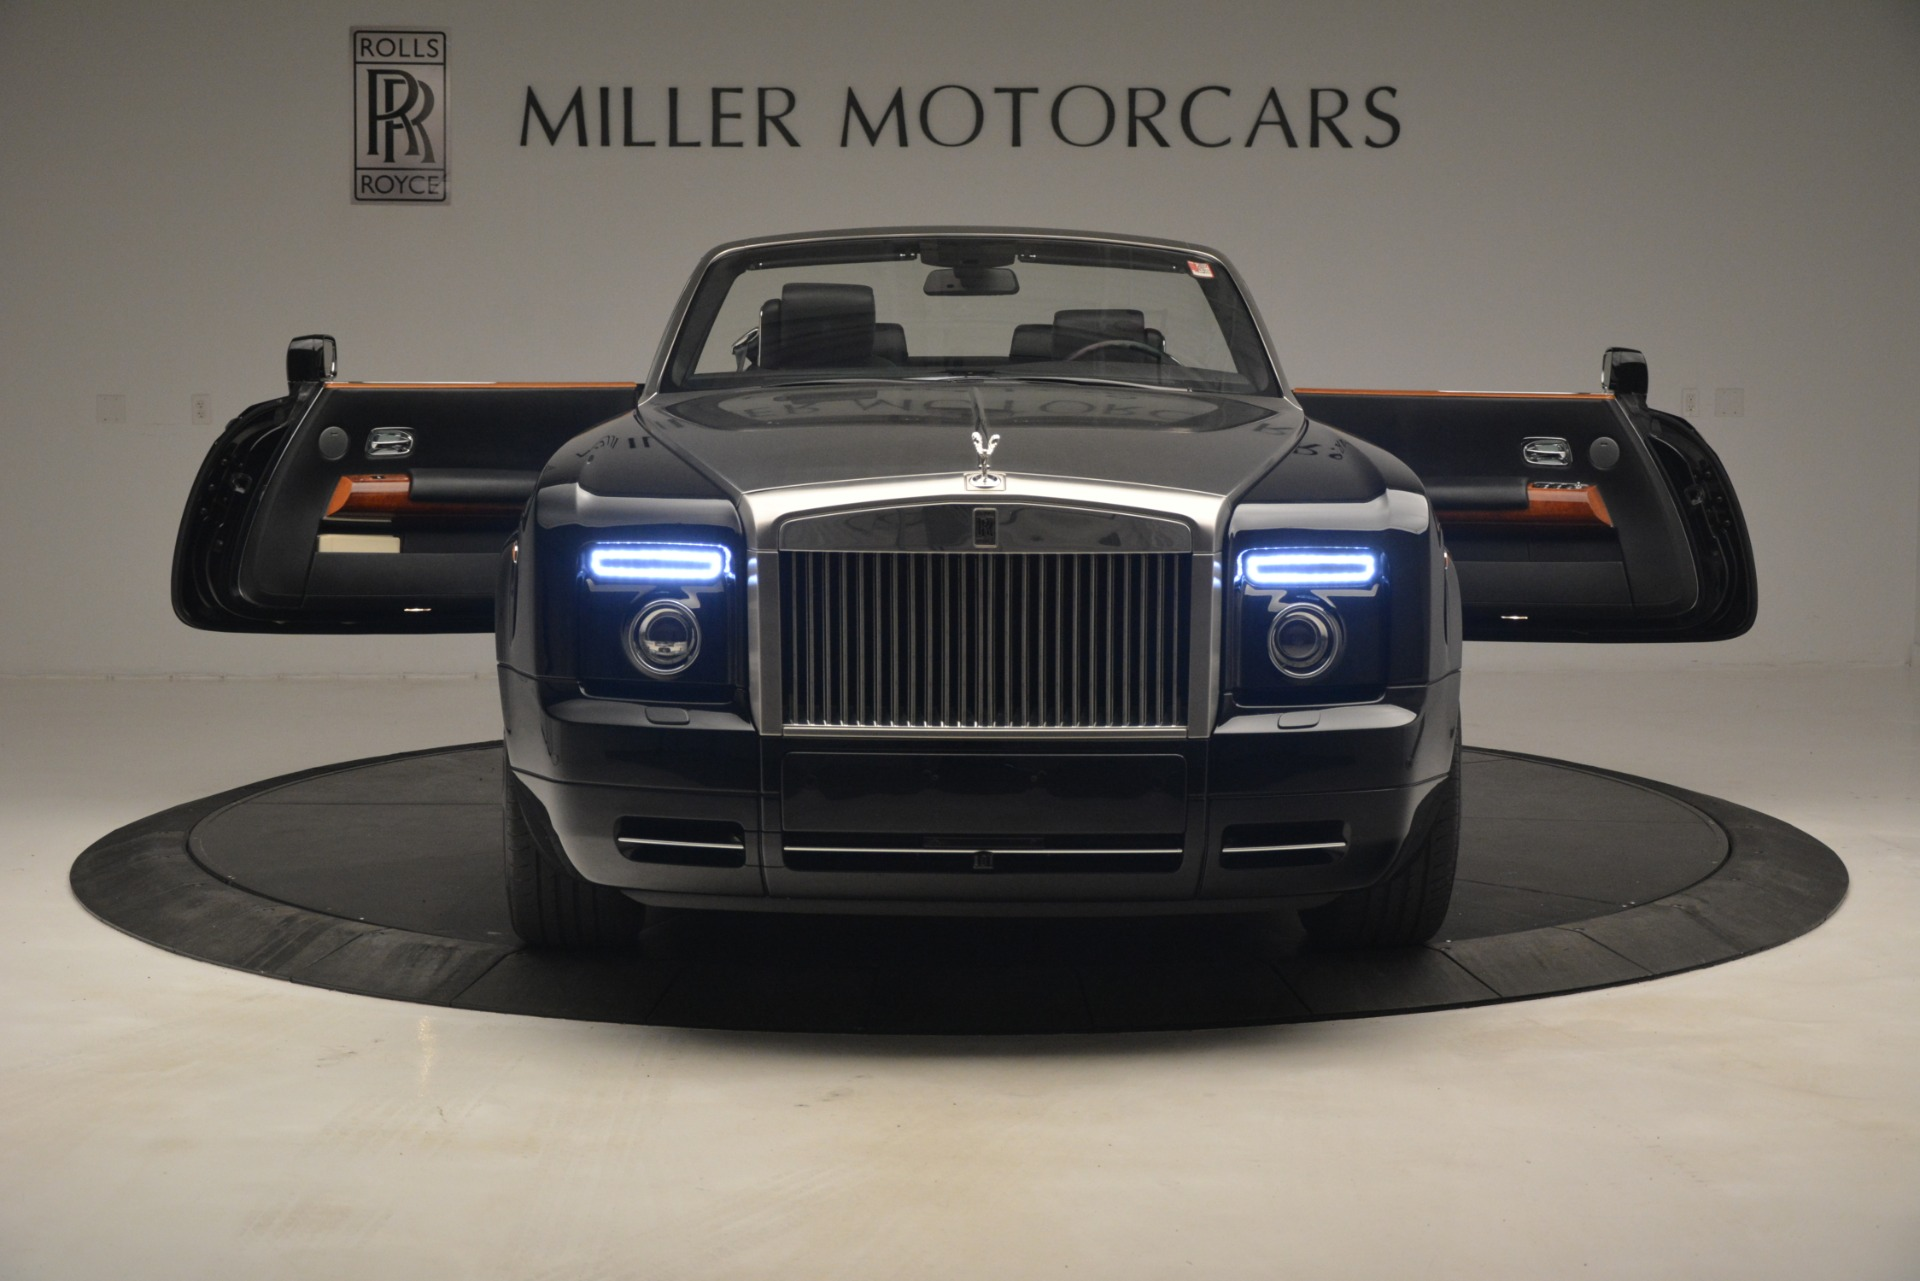 Used 2008 Rolls-Royce Phantom Drophead Coupe  For Sale In Westport, CT 3000_p17